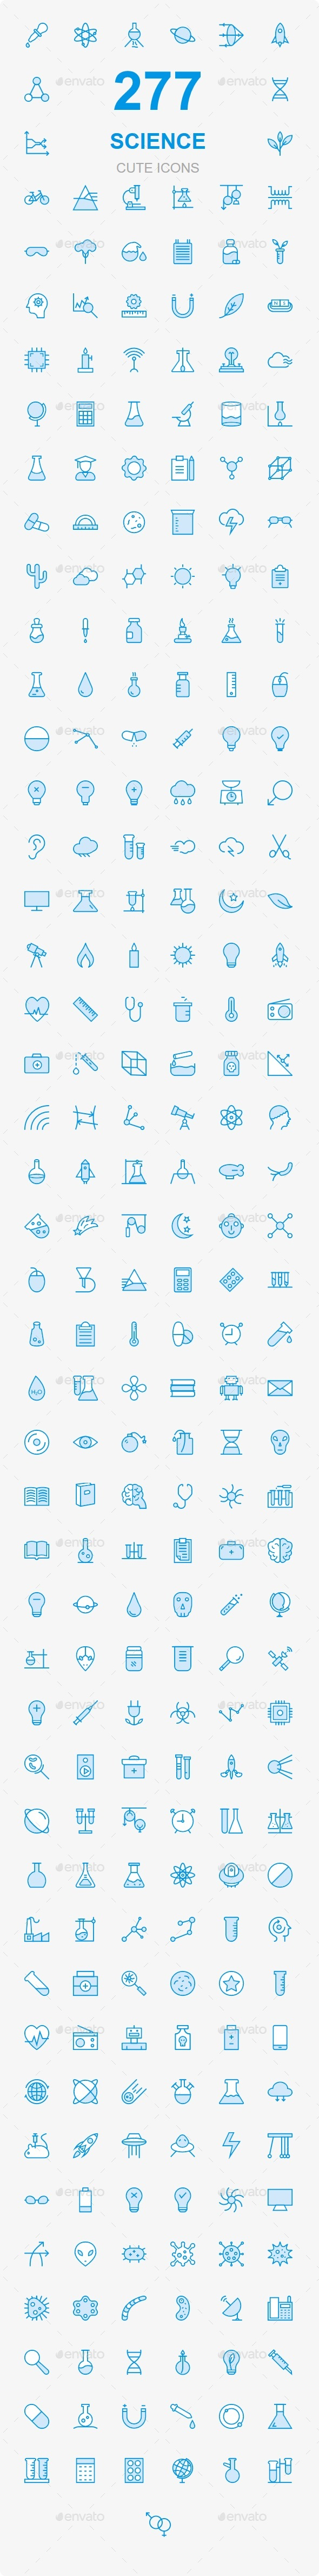 250+ Science cute icons - Web Icons